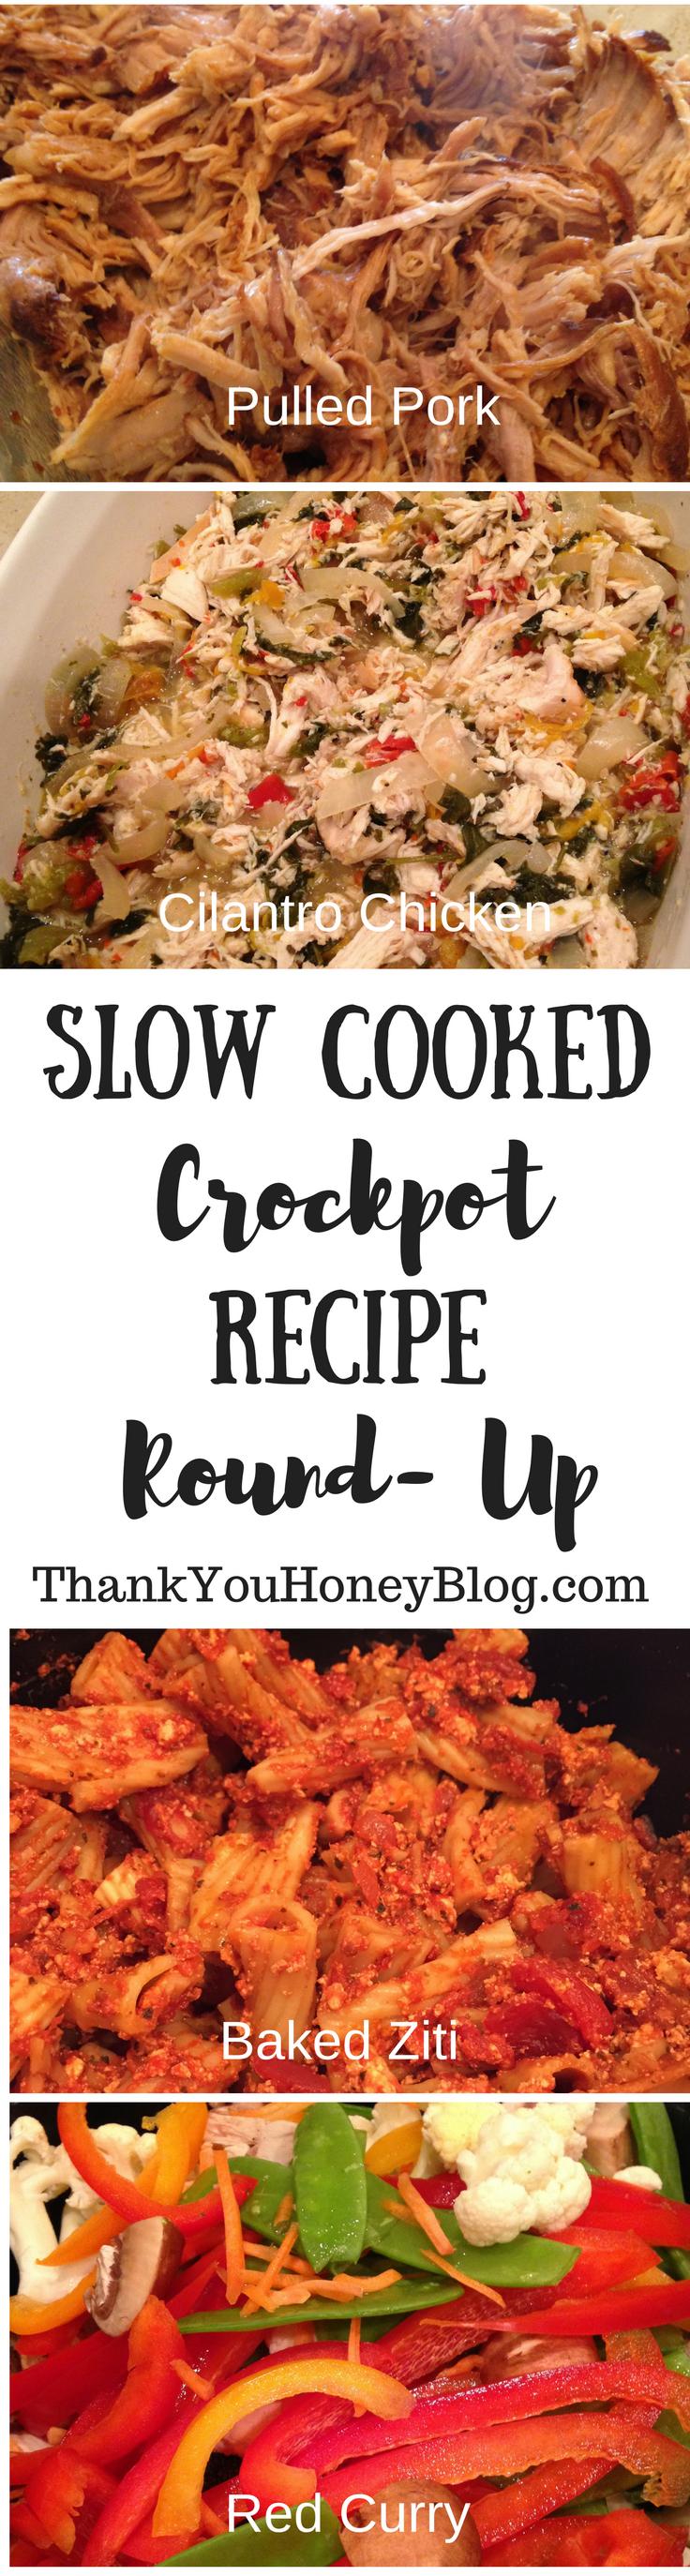 Slow Cooked Crockpot Recipe Round Up